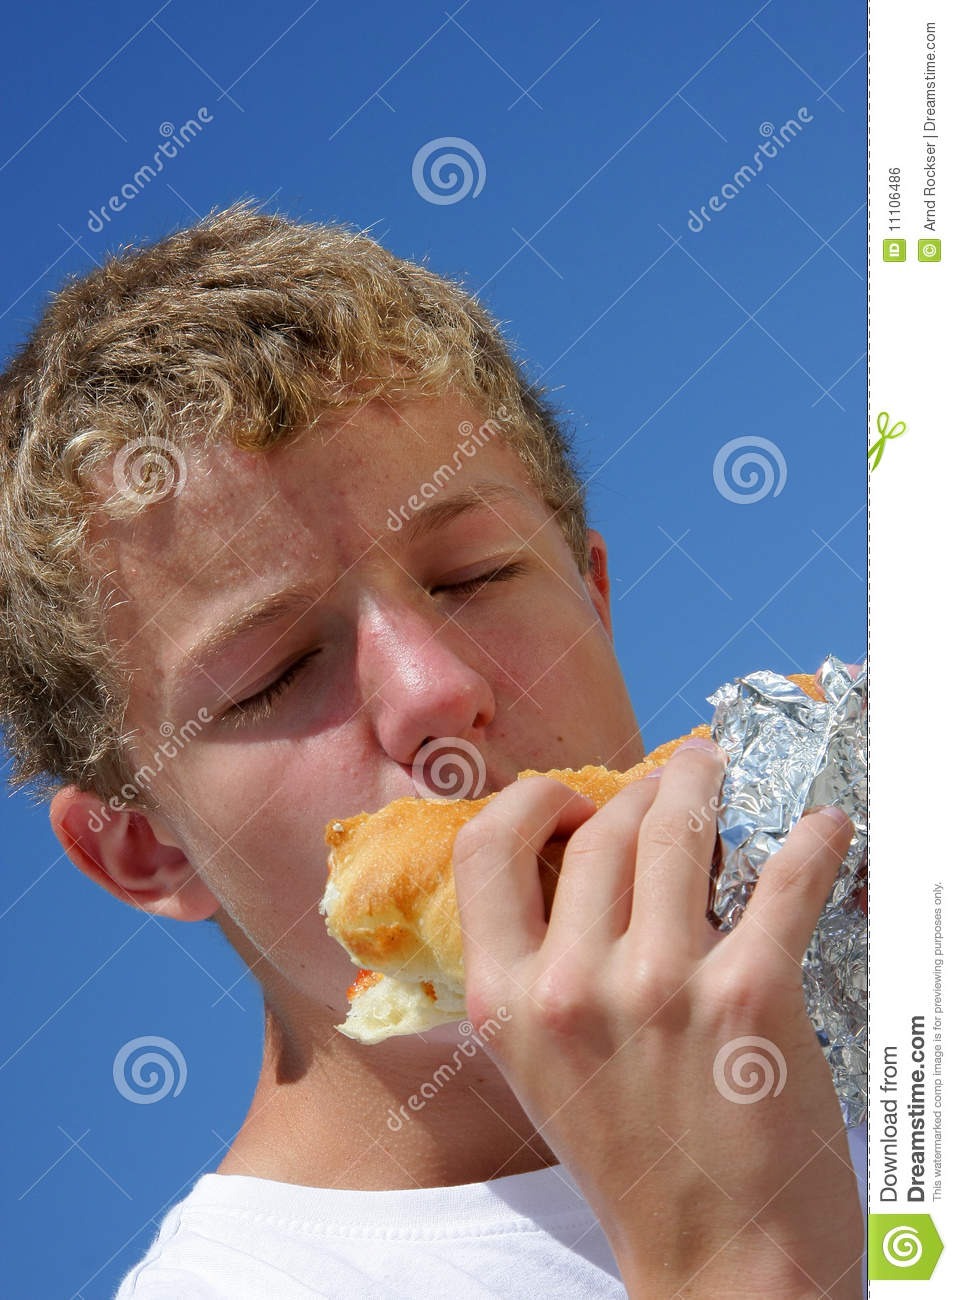 A Teenager Biting Into A Sandwich With Closed Eyes Royalty